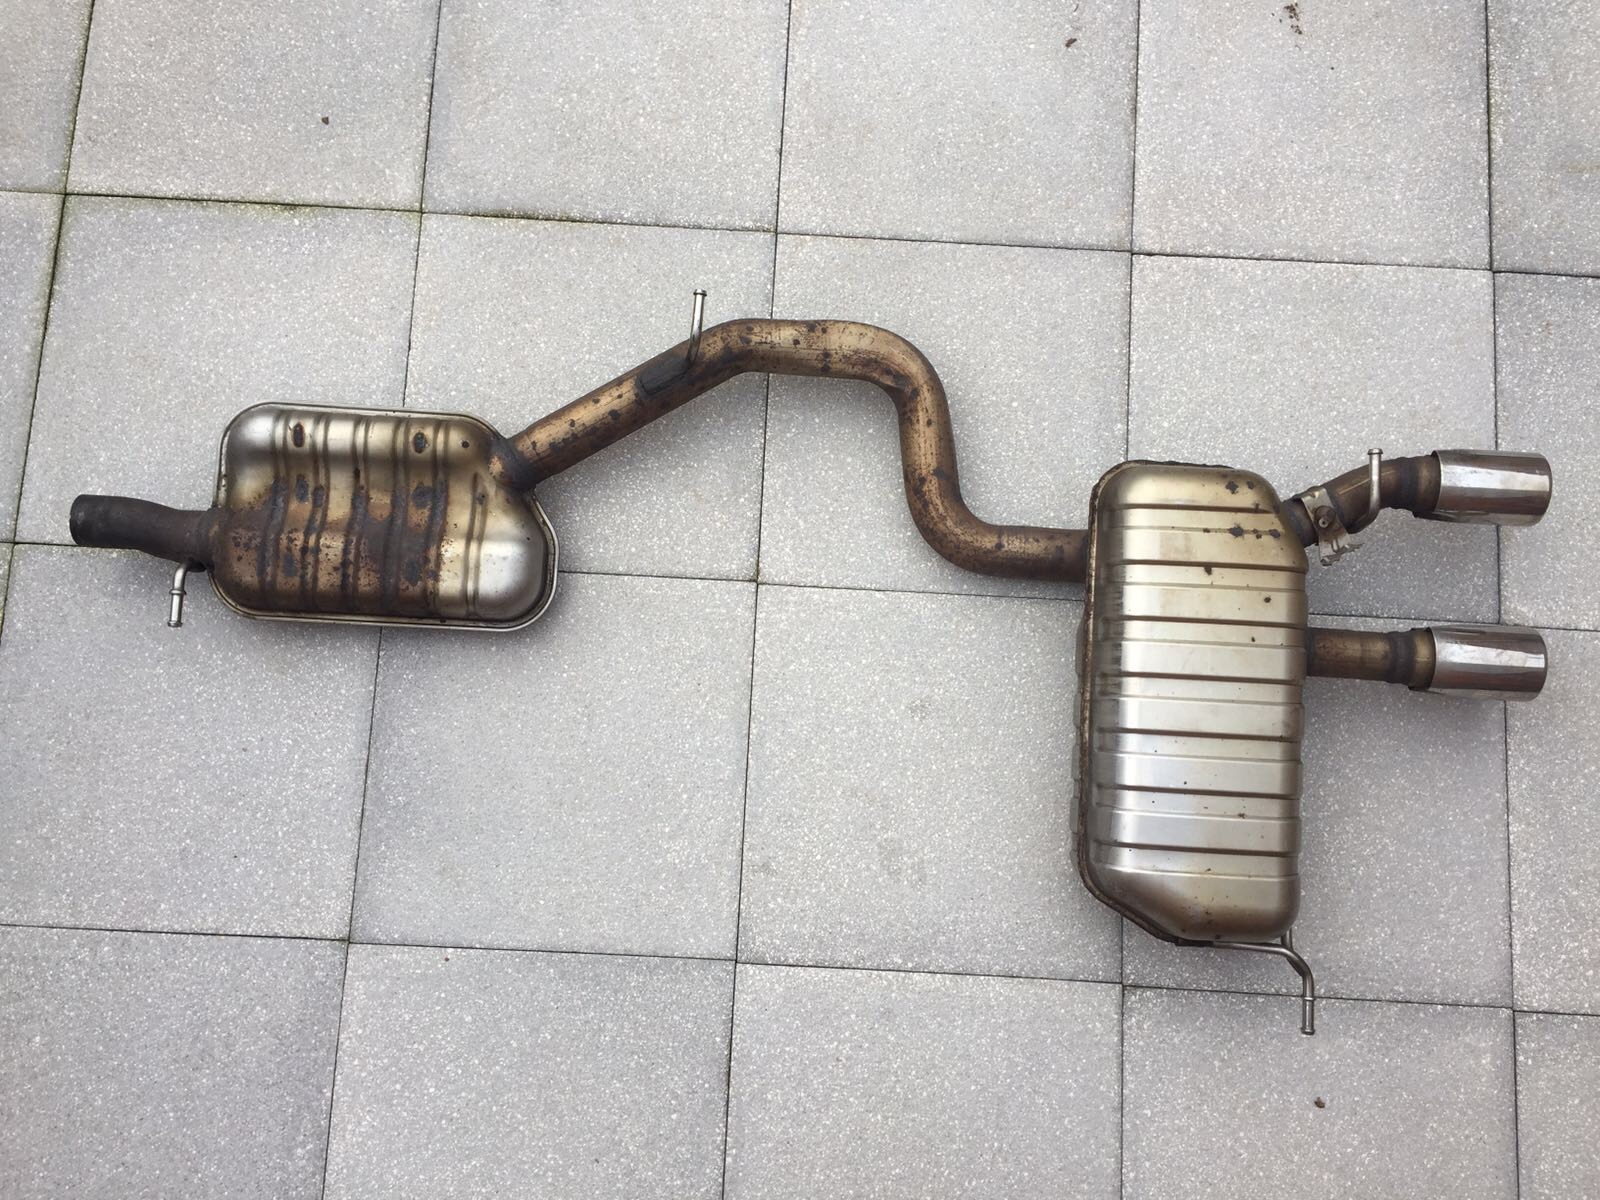 R32 OEM Exhaust For SALE!